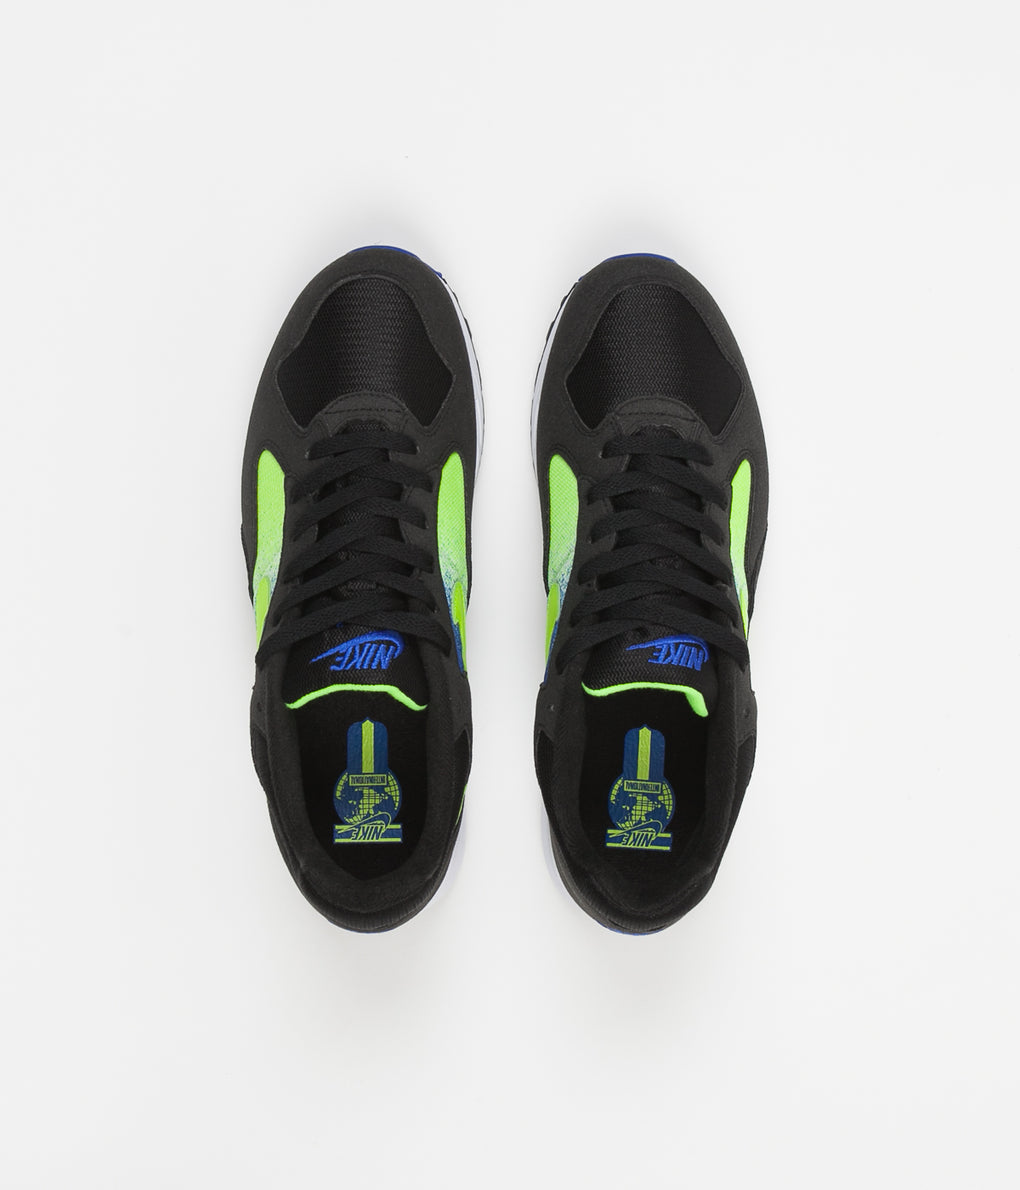 Nike Air Skylon II Shoes - Black / Volt - Racer Blue - White